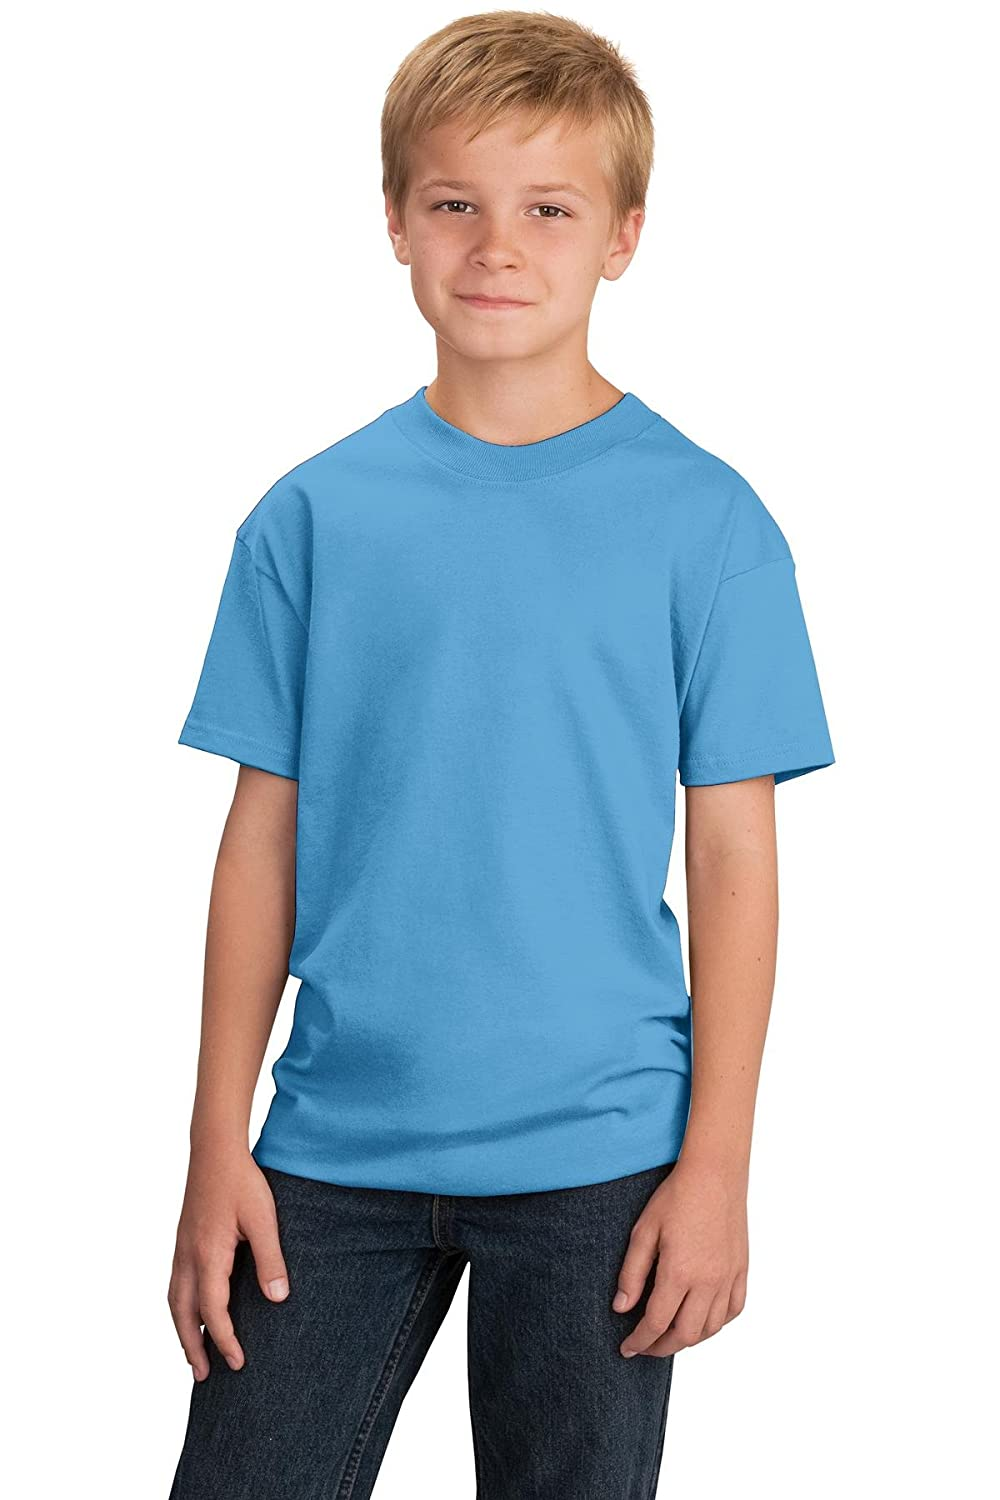 db4a14f43382 Style #: PC54Y An indispensable t-shirt in our classic silhouette&mdashwith  a very friendly price. 5.4-ounce 100% cotton Tag-free label Coverseamed  neck 1x1 ...